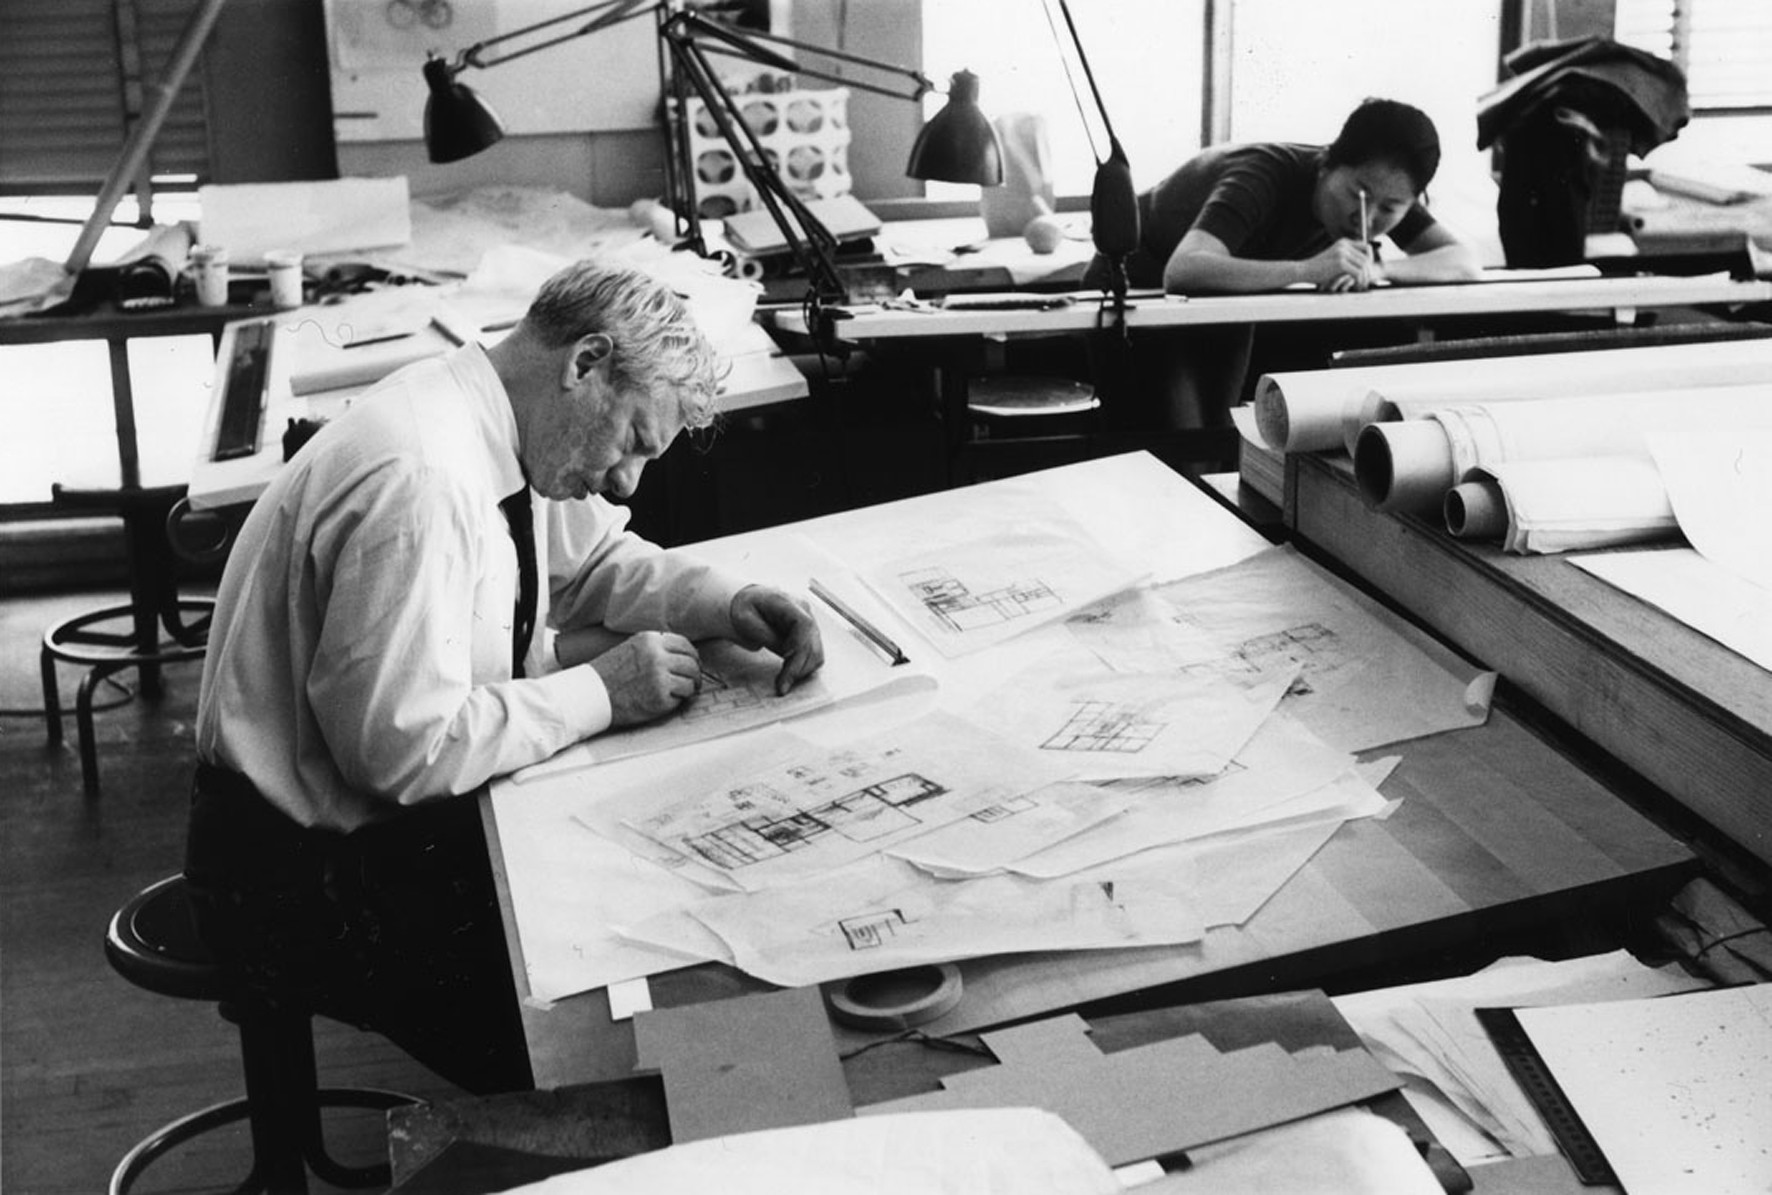 Louis Kahn at work in his studio in 1961.